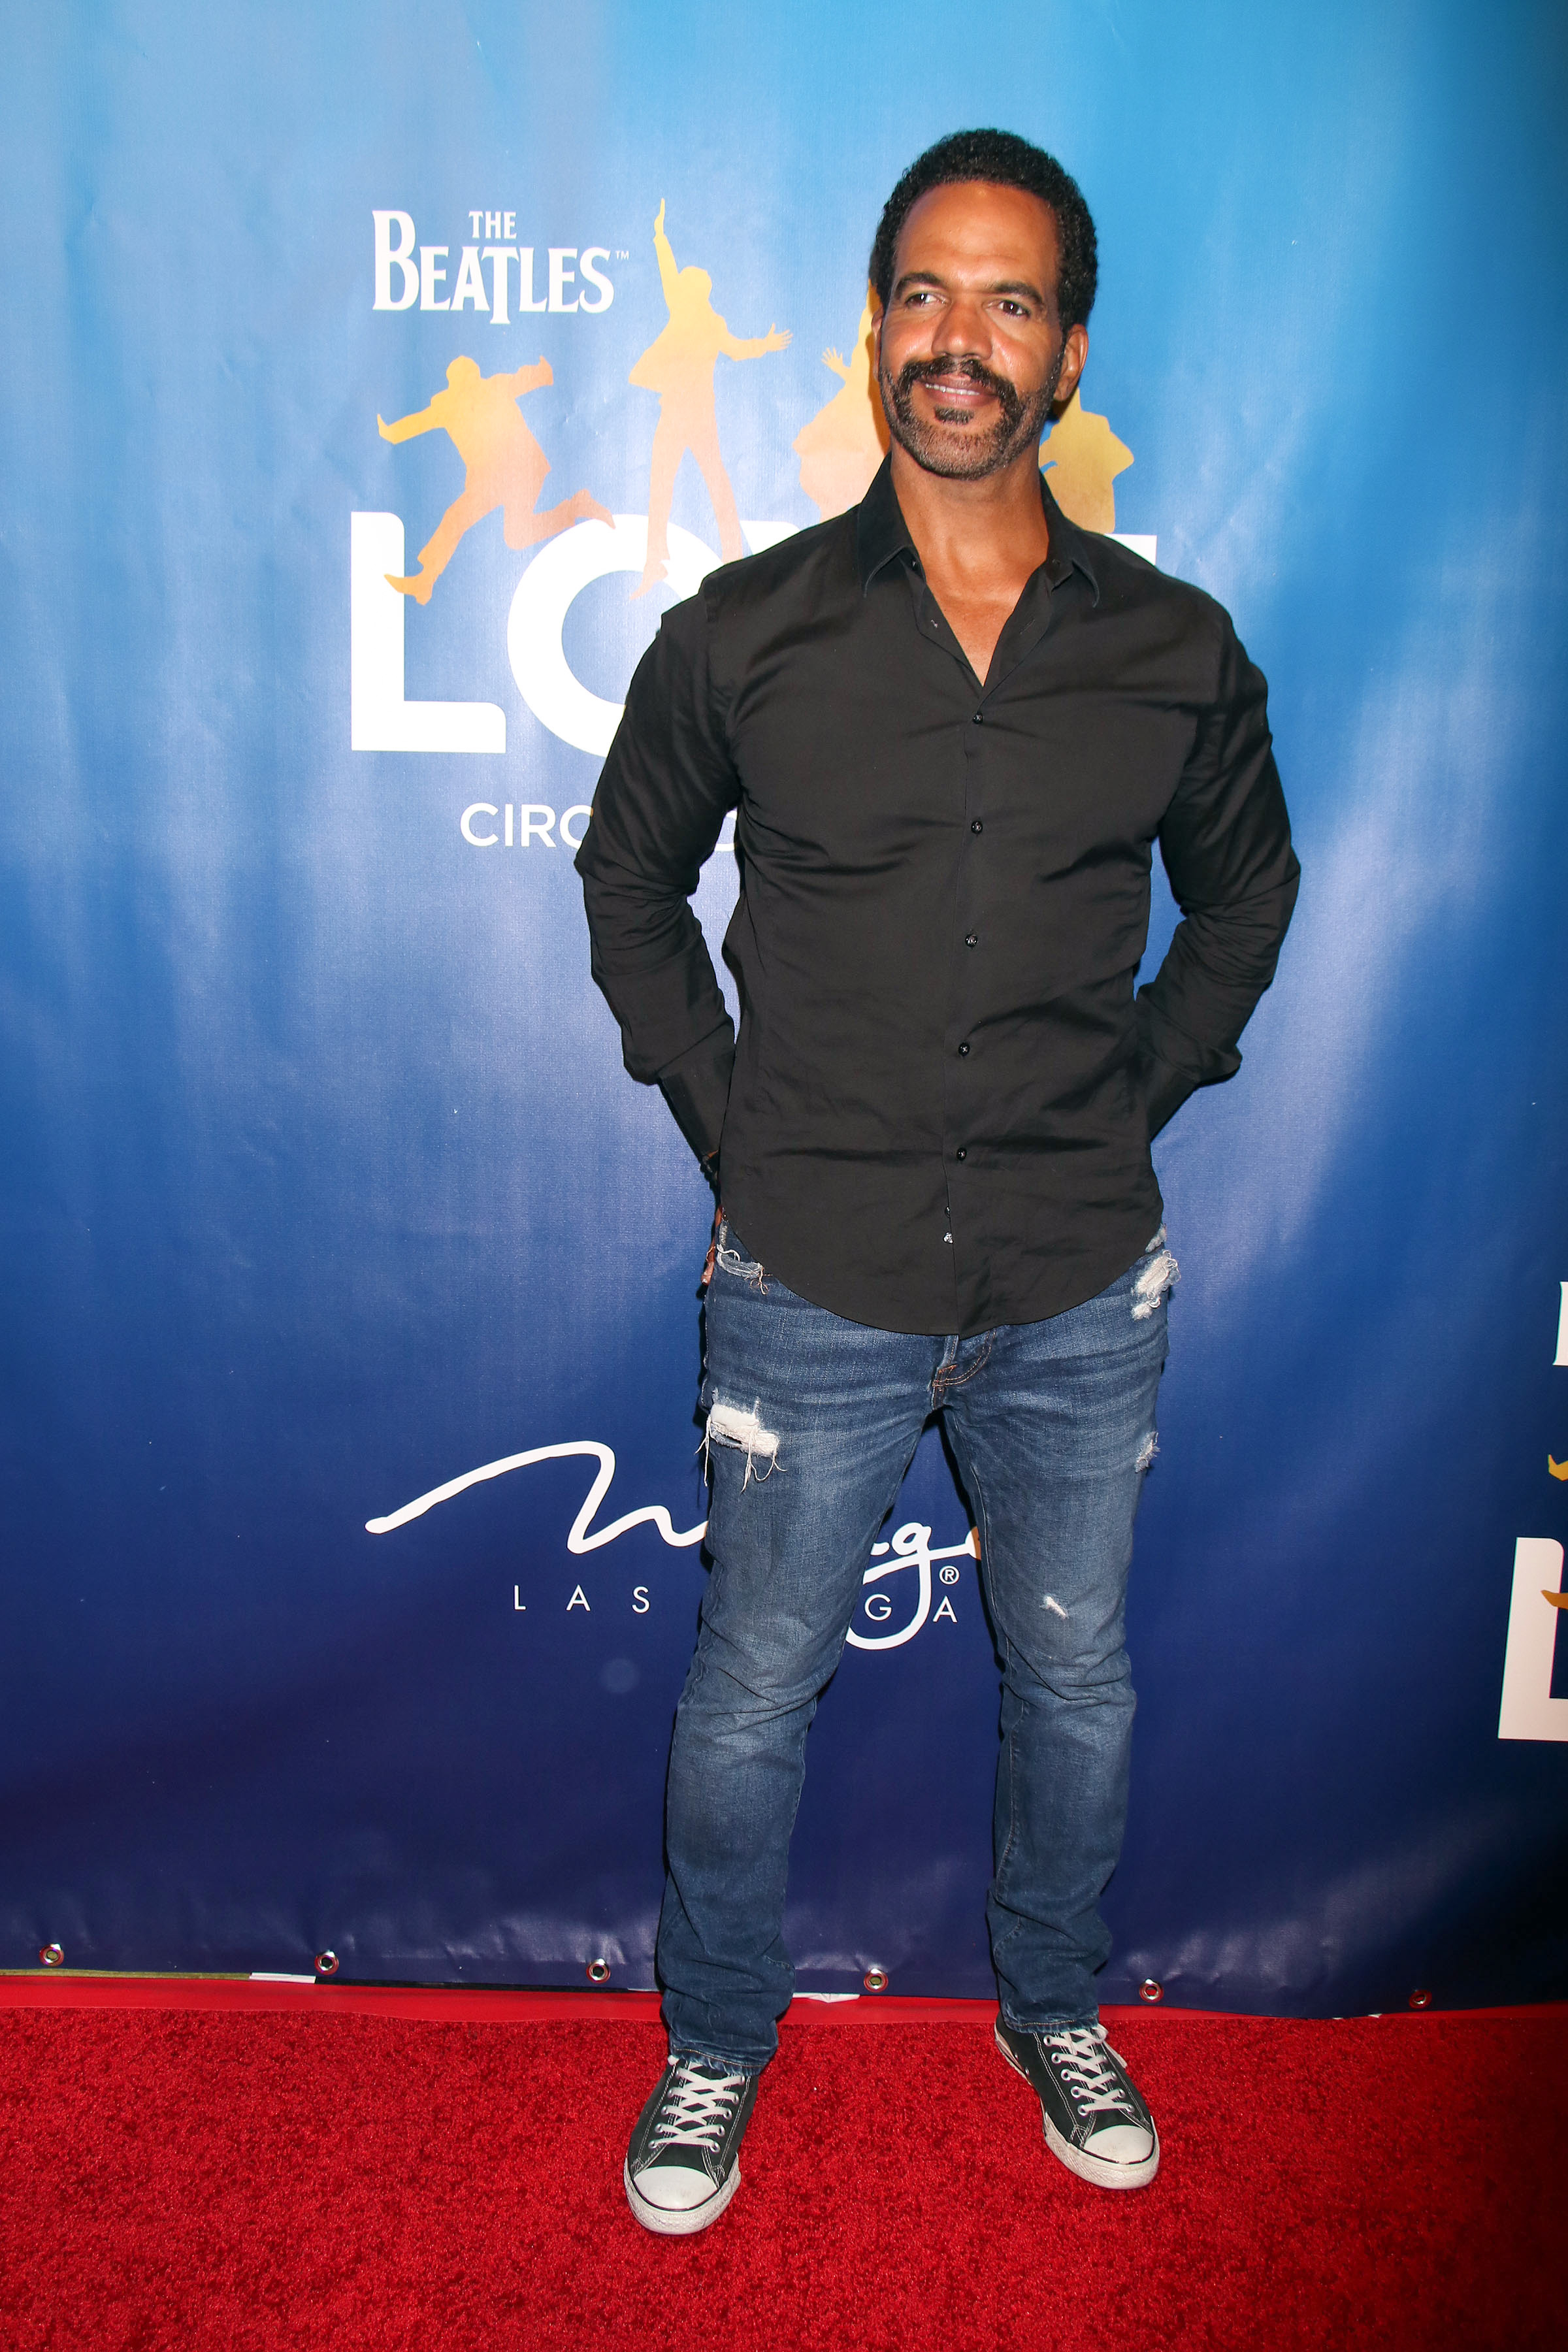 Kristoff St. John Cause Of Death Determined To Be Heart Disease